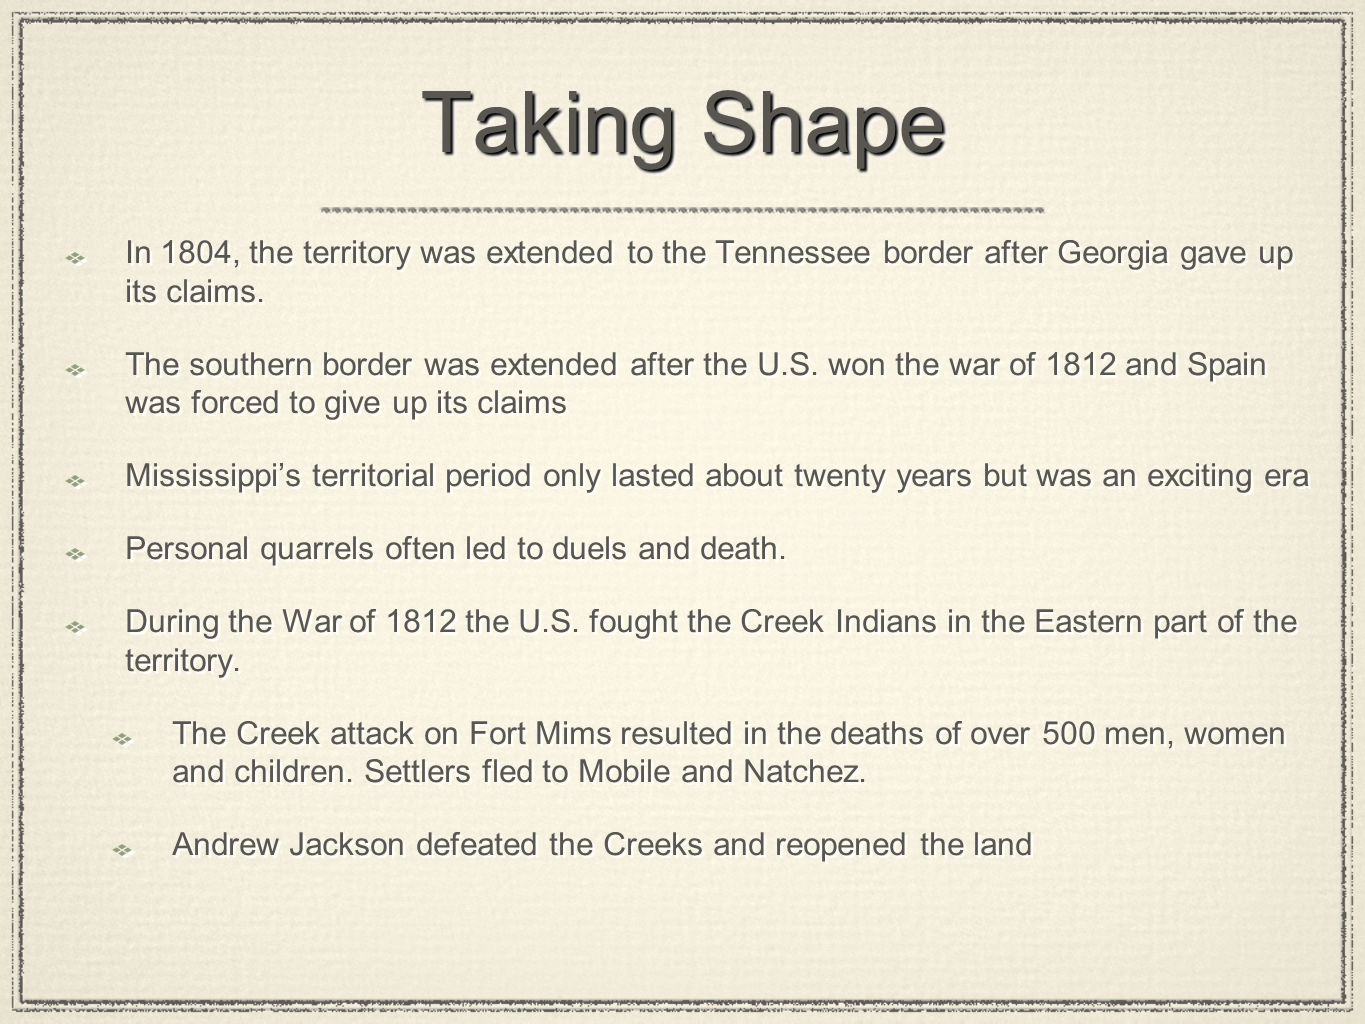 Taking Shape In 1804, the territory was extended to the Tennessee border after Georgia gave up its claims. The southern border was extended after the